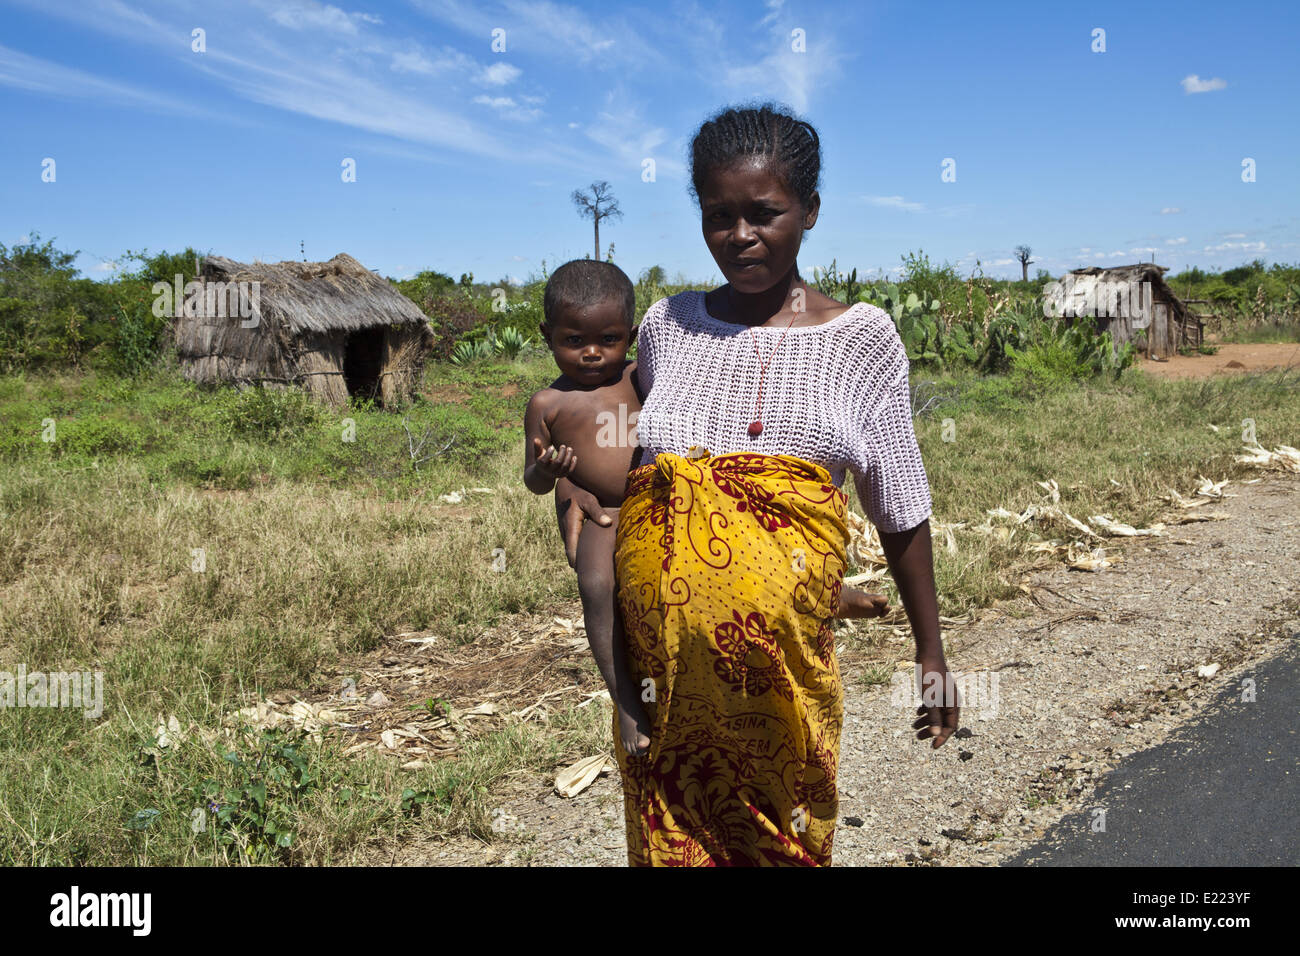 Pregnant african woman with child, Madagascar - Stock Image